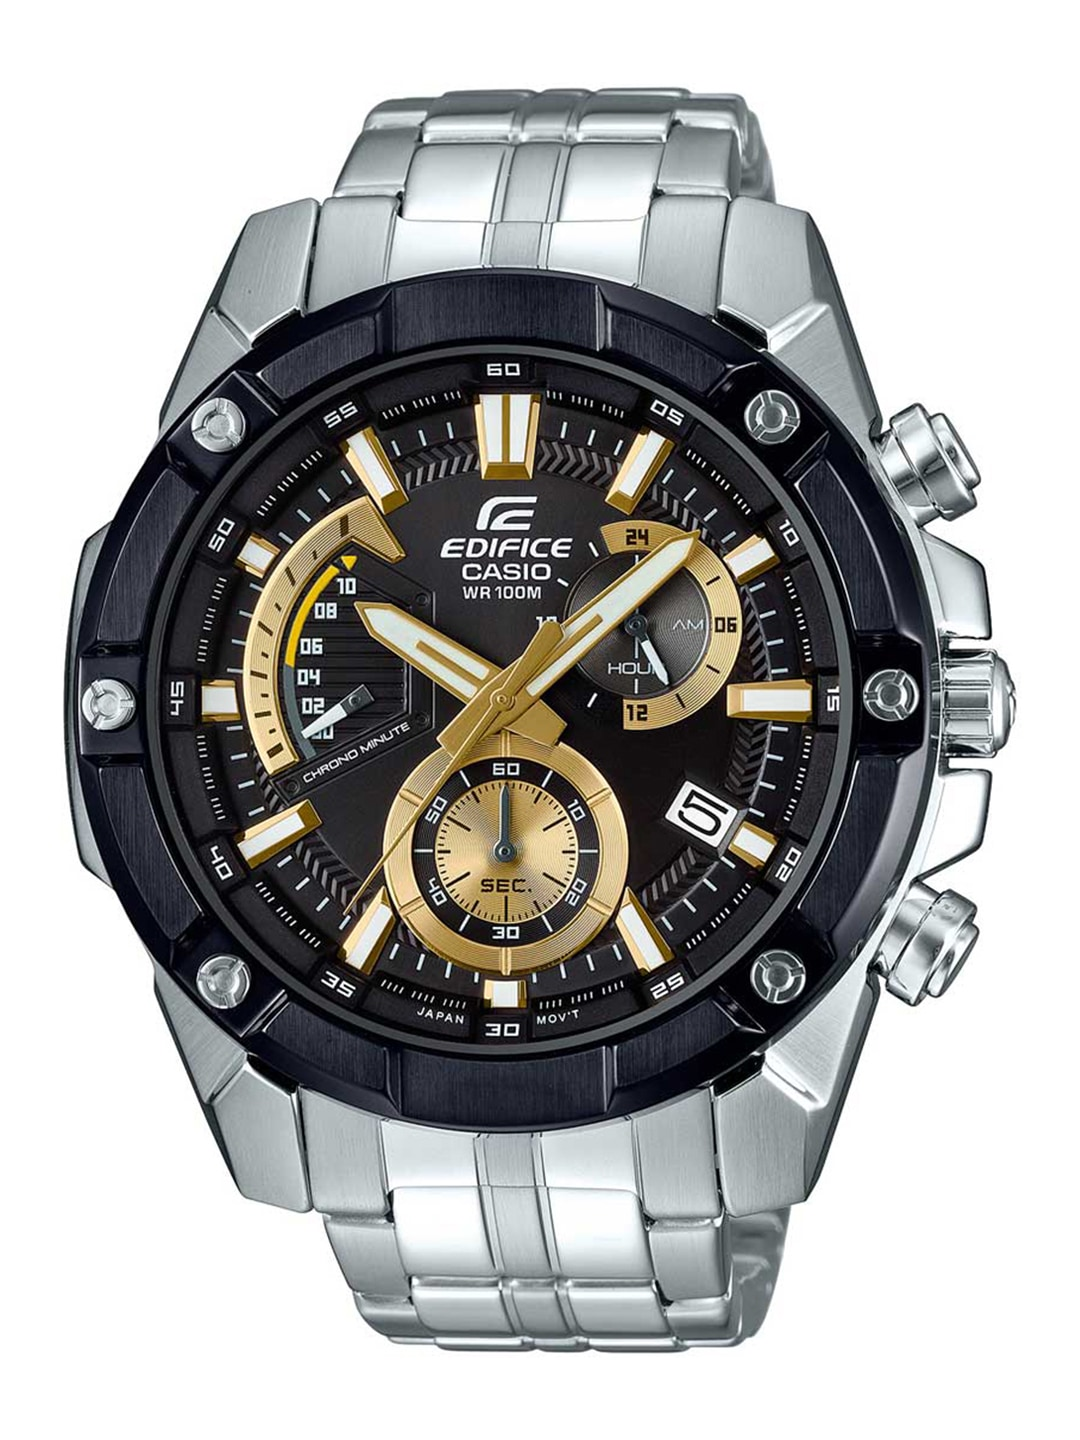 5e4b9c9d6973 Casio Chronograph Watches - Buy Chronograph Watch Online